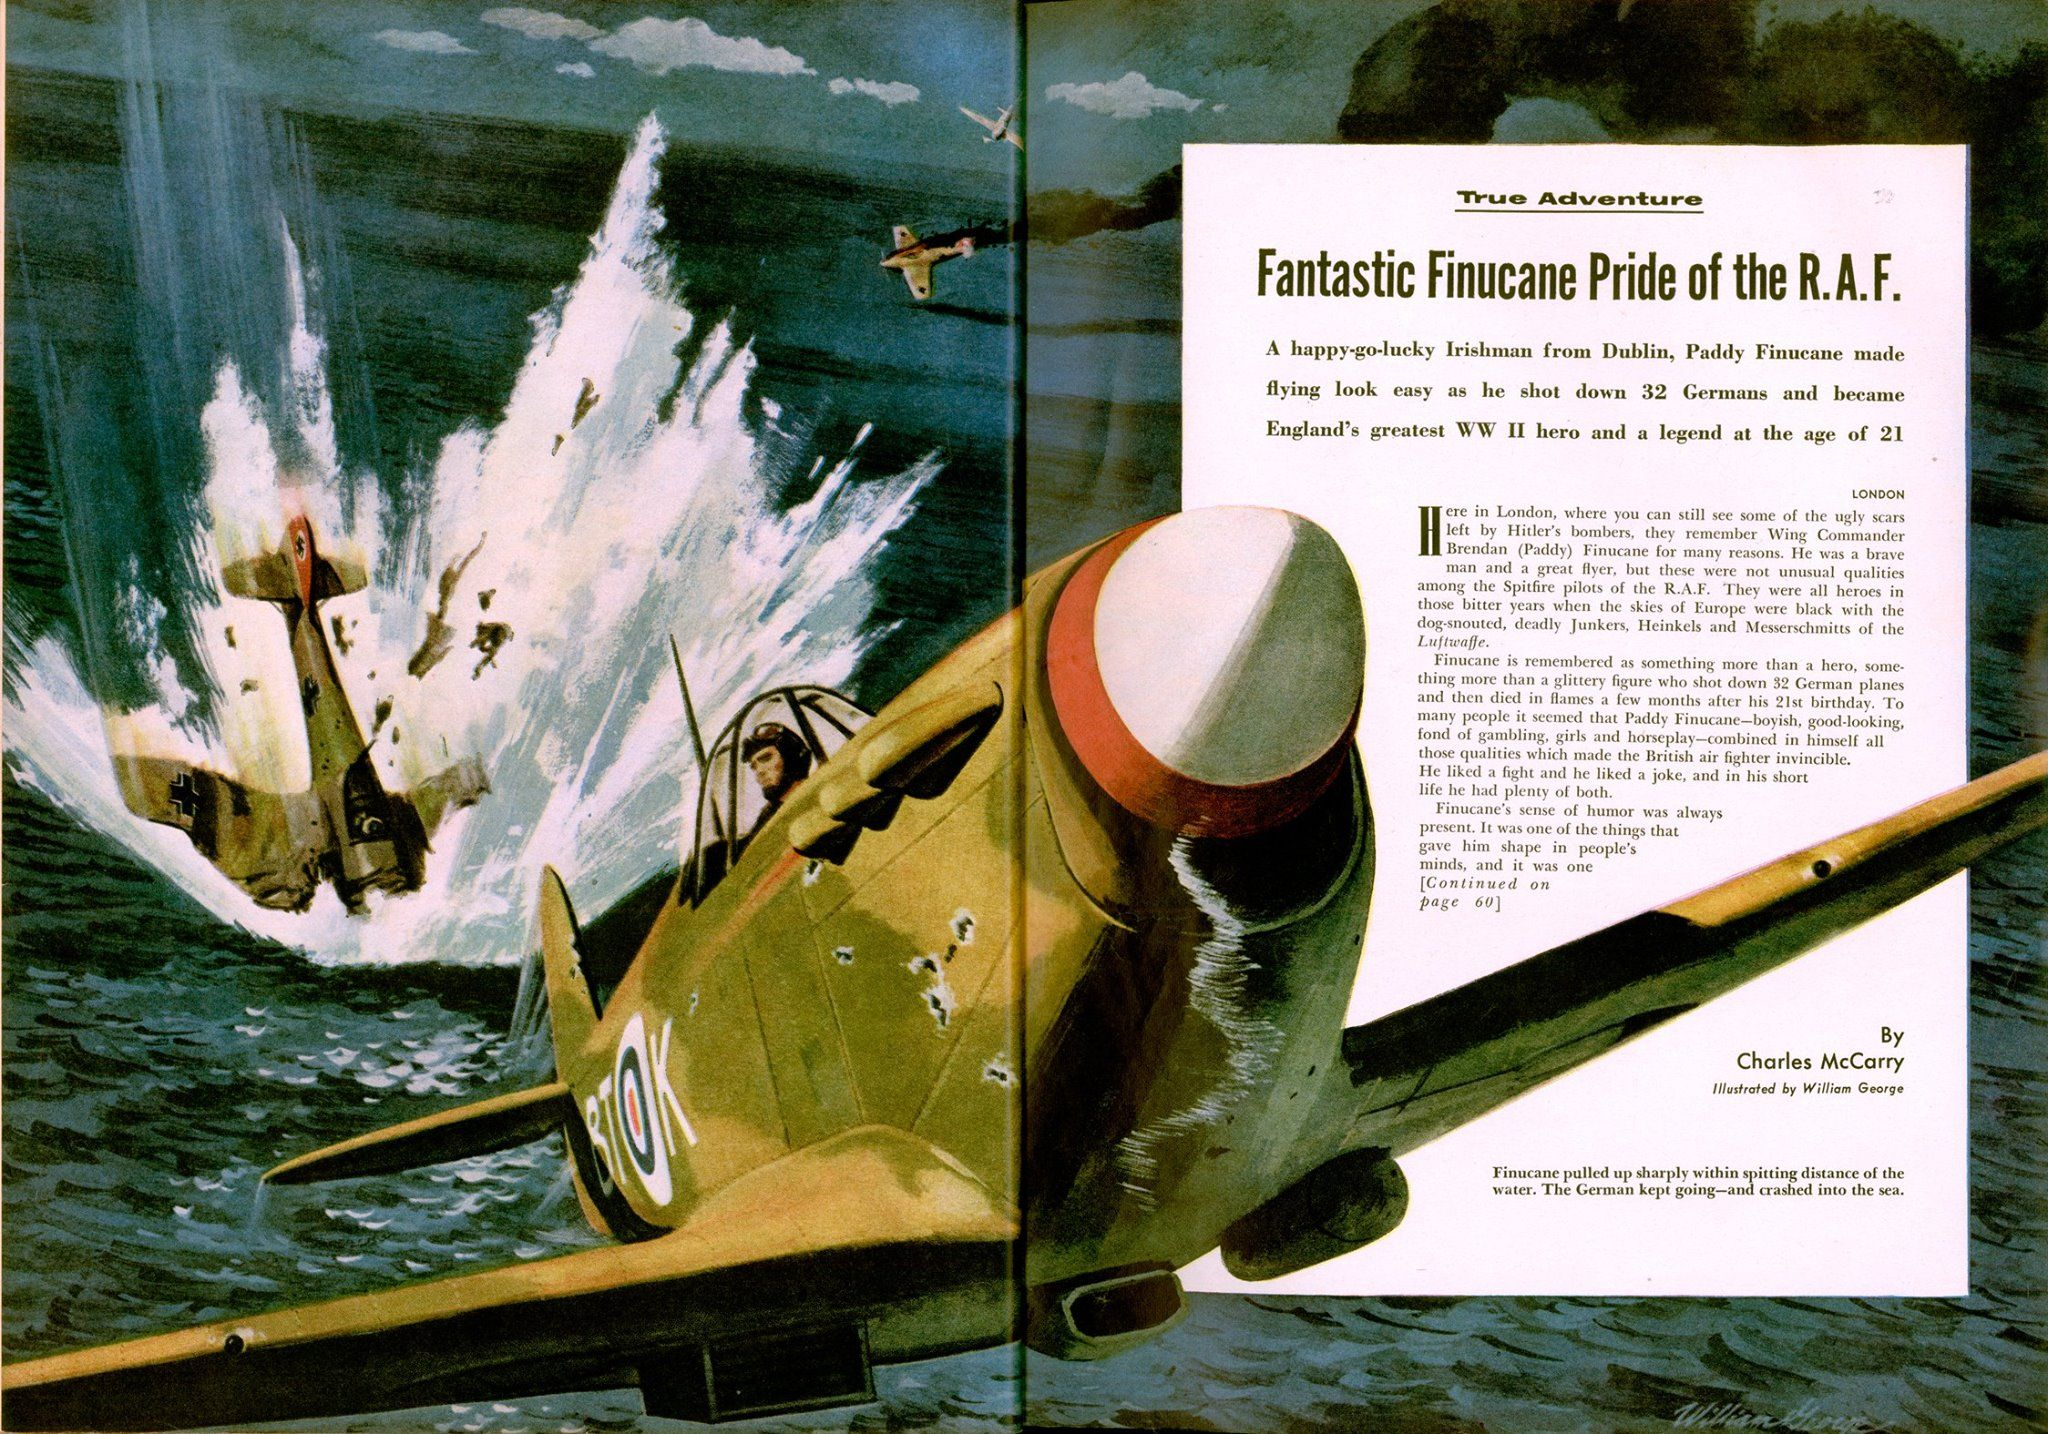 "William George - Cavalier - Sept 1959 - illustrating ""Fantastic Finucane Pride of the R.A.F."" by Charles McCarryhttps://www.facebook.com/WheatleyMarks/photos/a.120564614664549.25428.112424898811854/828991857155151/?type=3"